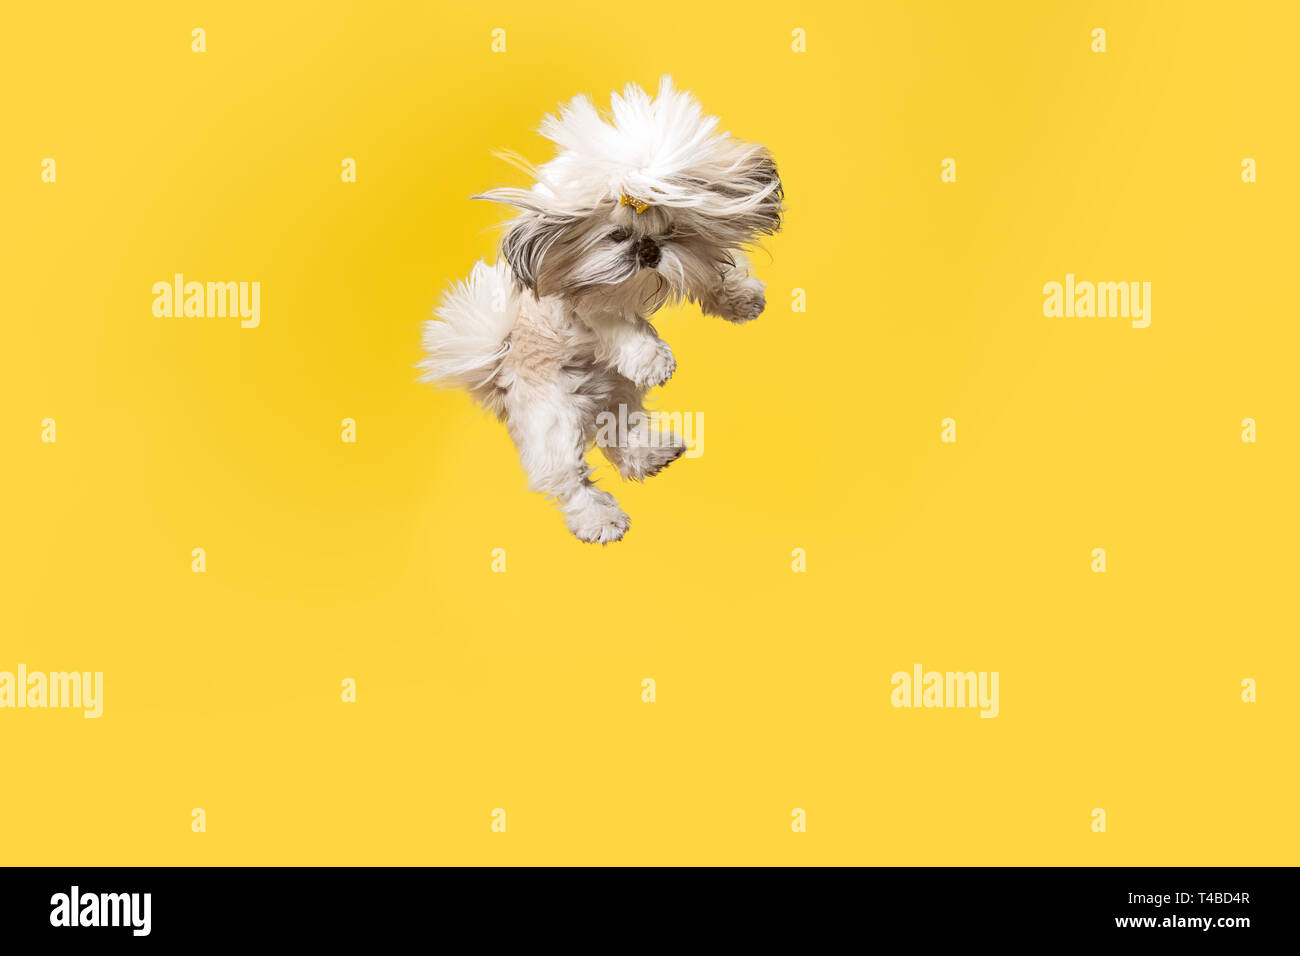 Shih Tzu Puppy Wearing Orange Bow Cute Doggy Or Pet Is Jumping Isolated On Yellow Background The Chrysanthemum Dog Negative Space To Insert Your Text Or Image Stock Photo Alamy